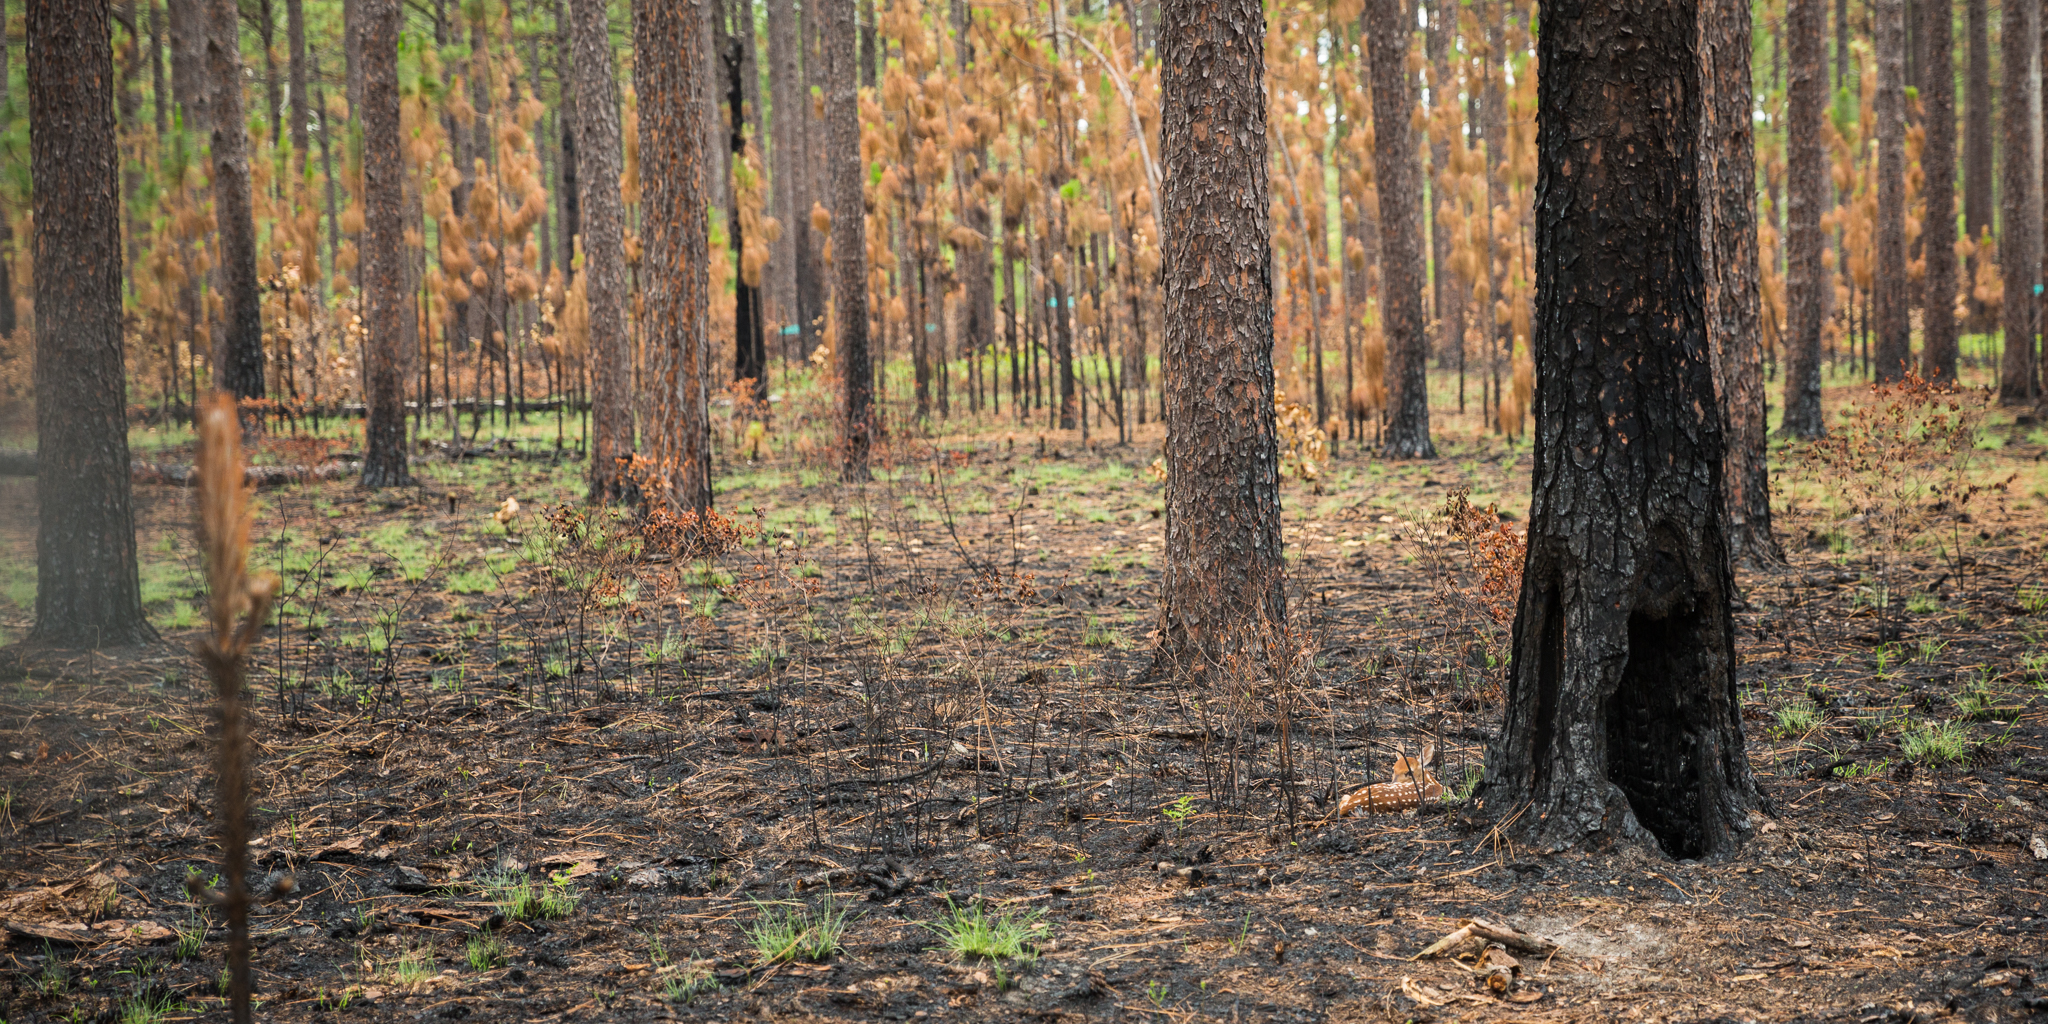 A fawn rests at the base of a recent burn in a longleaf grove in Fort Bragg, NC. Prescribed burns keep the forest healthy.